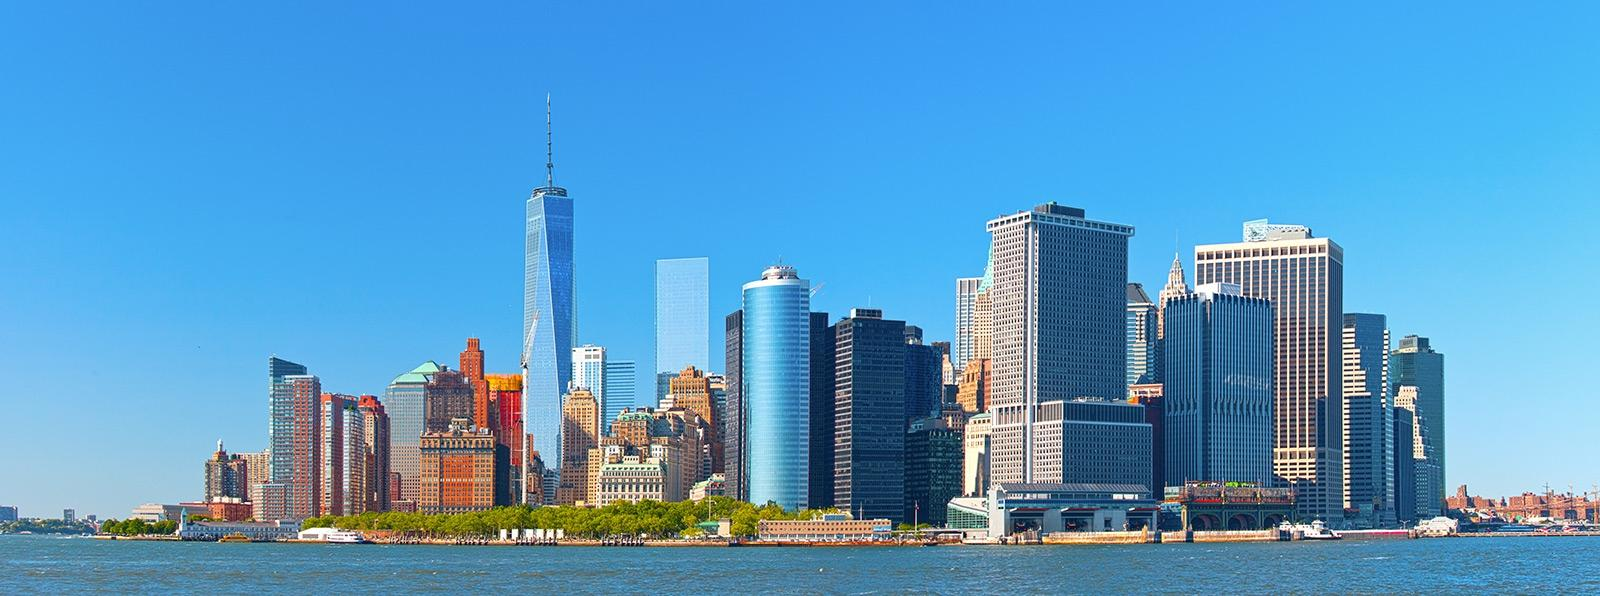 Adaptive Reuse in NYC: Planning for Site Remediation